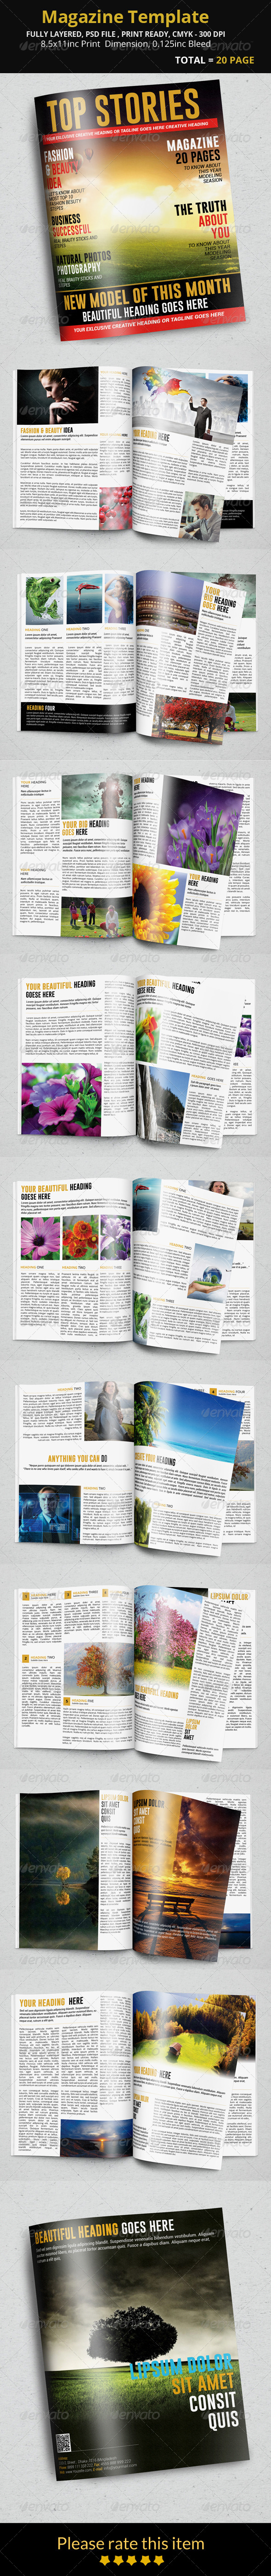 GraphicRiver Magazine Template 8392014